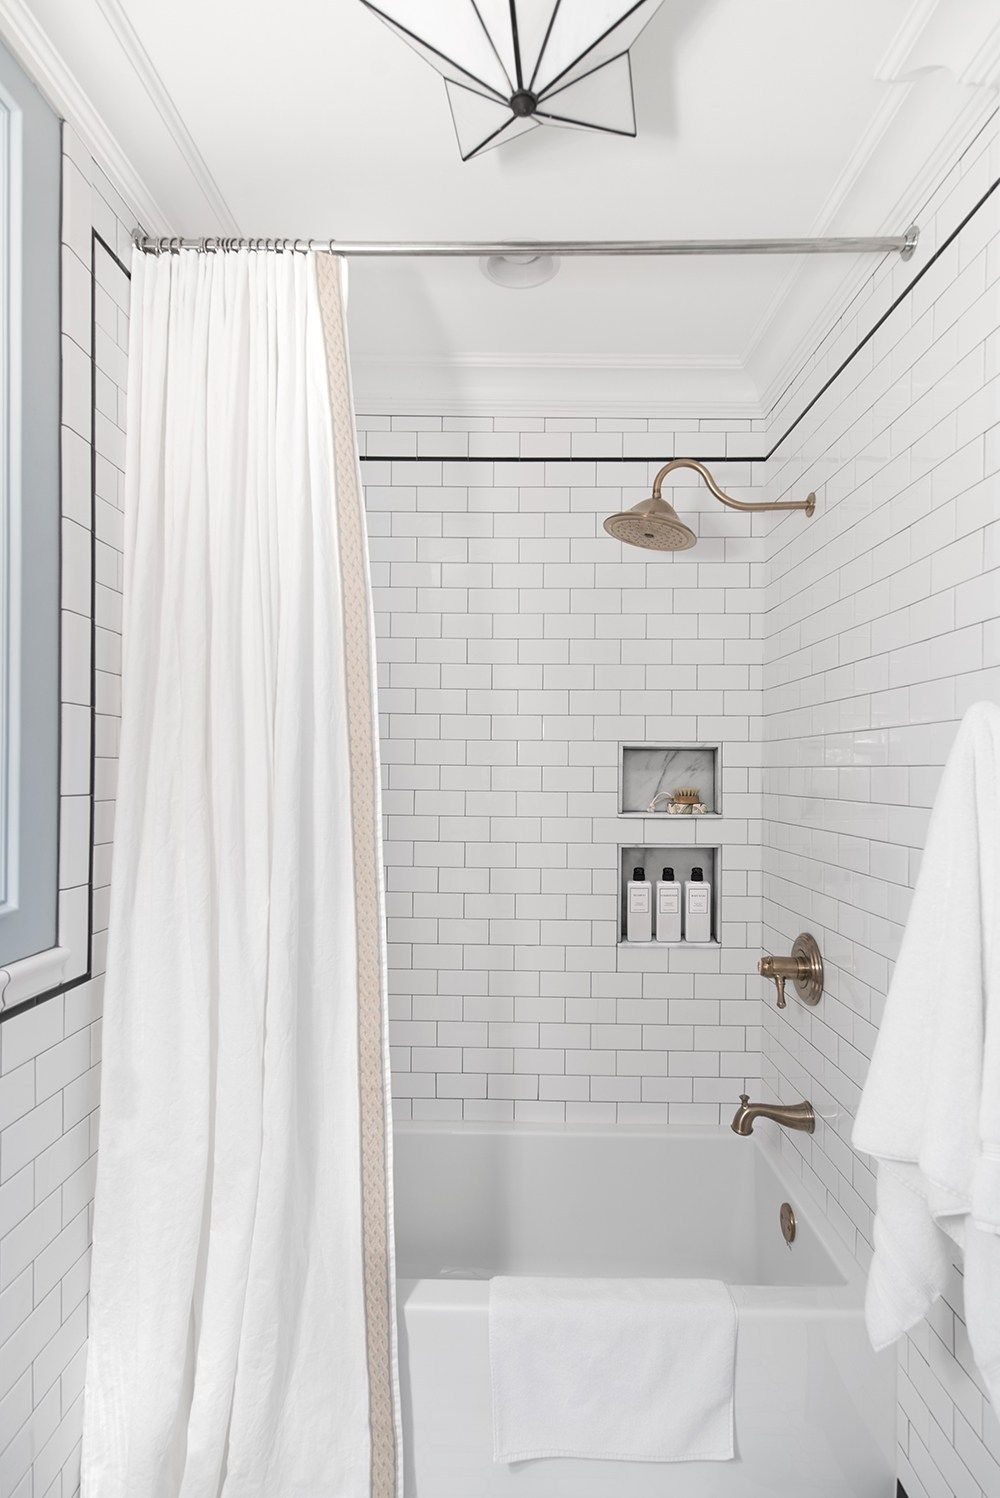 Extra Long Shower Curtain Diy Room For Tuesday Blog With Images